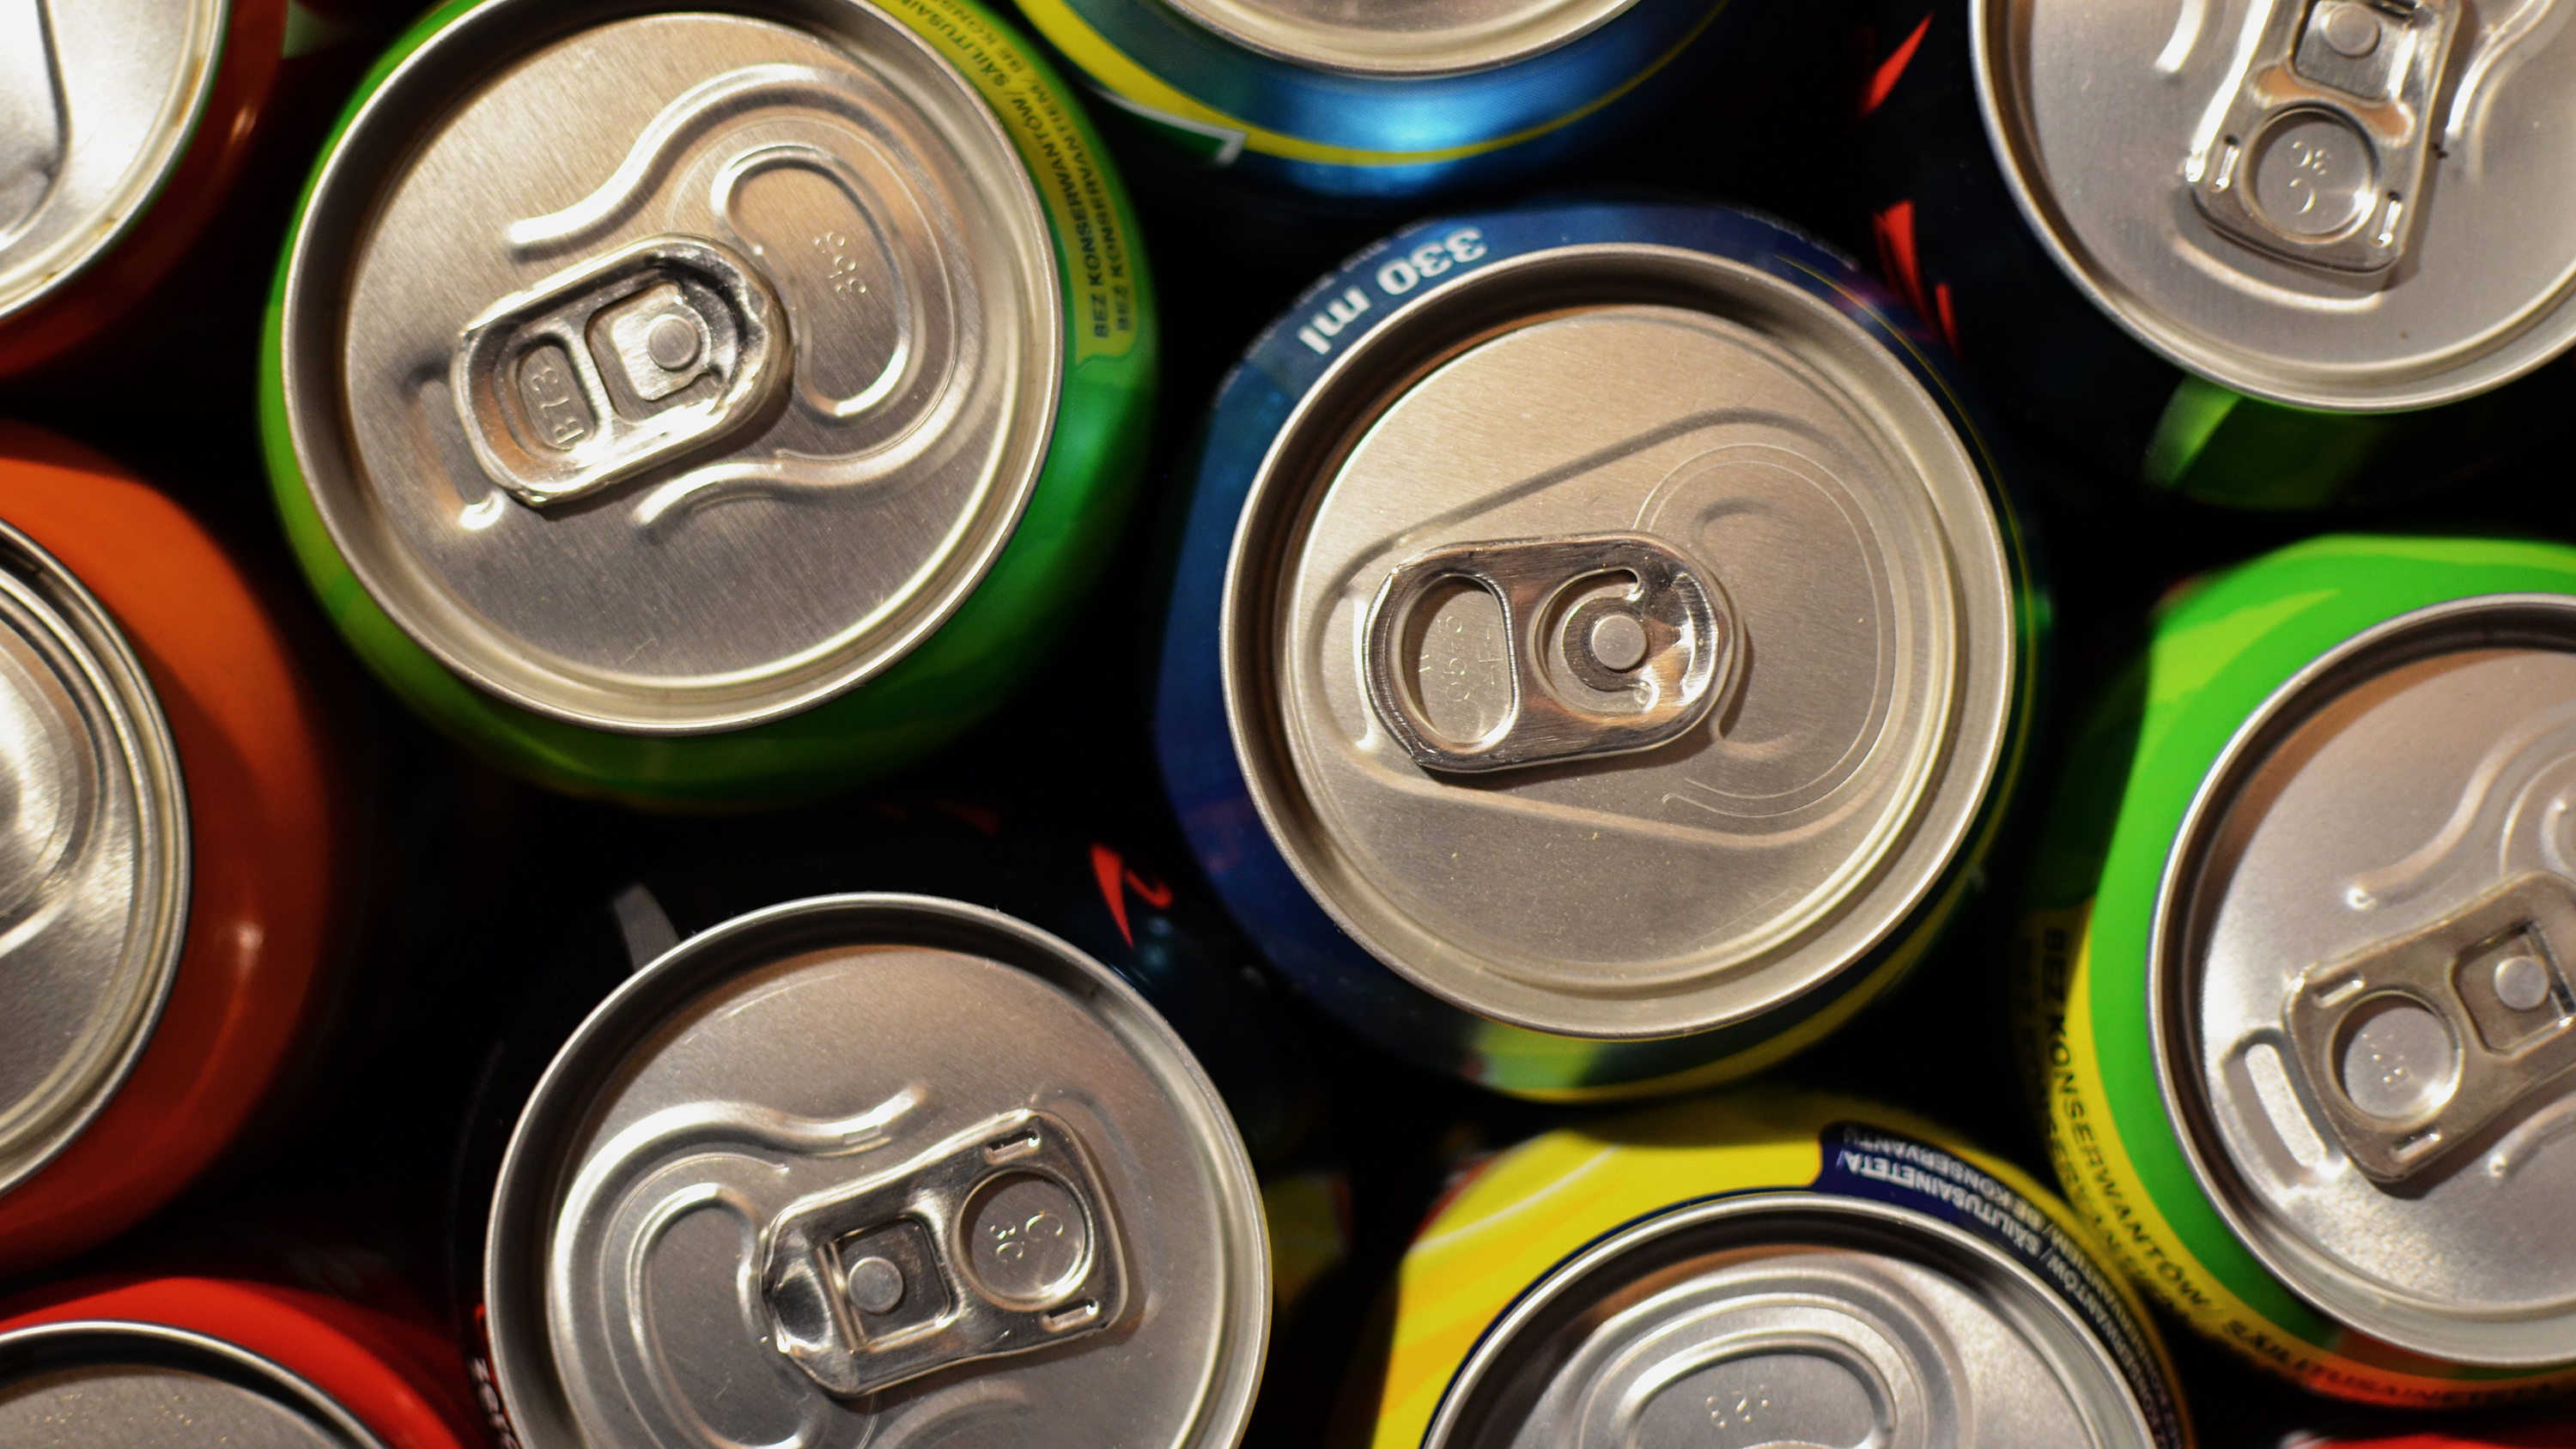 Photo of soda cans.